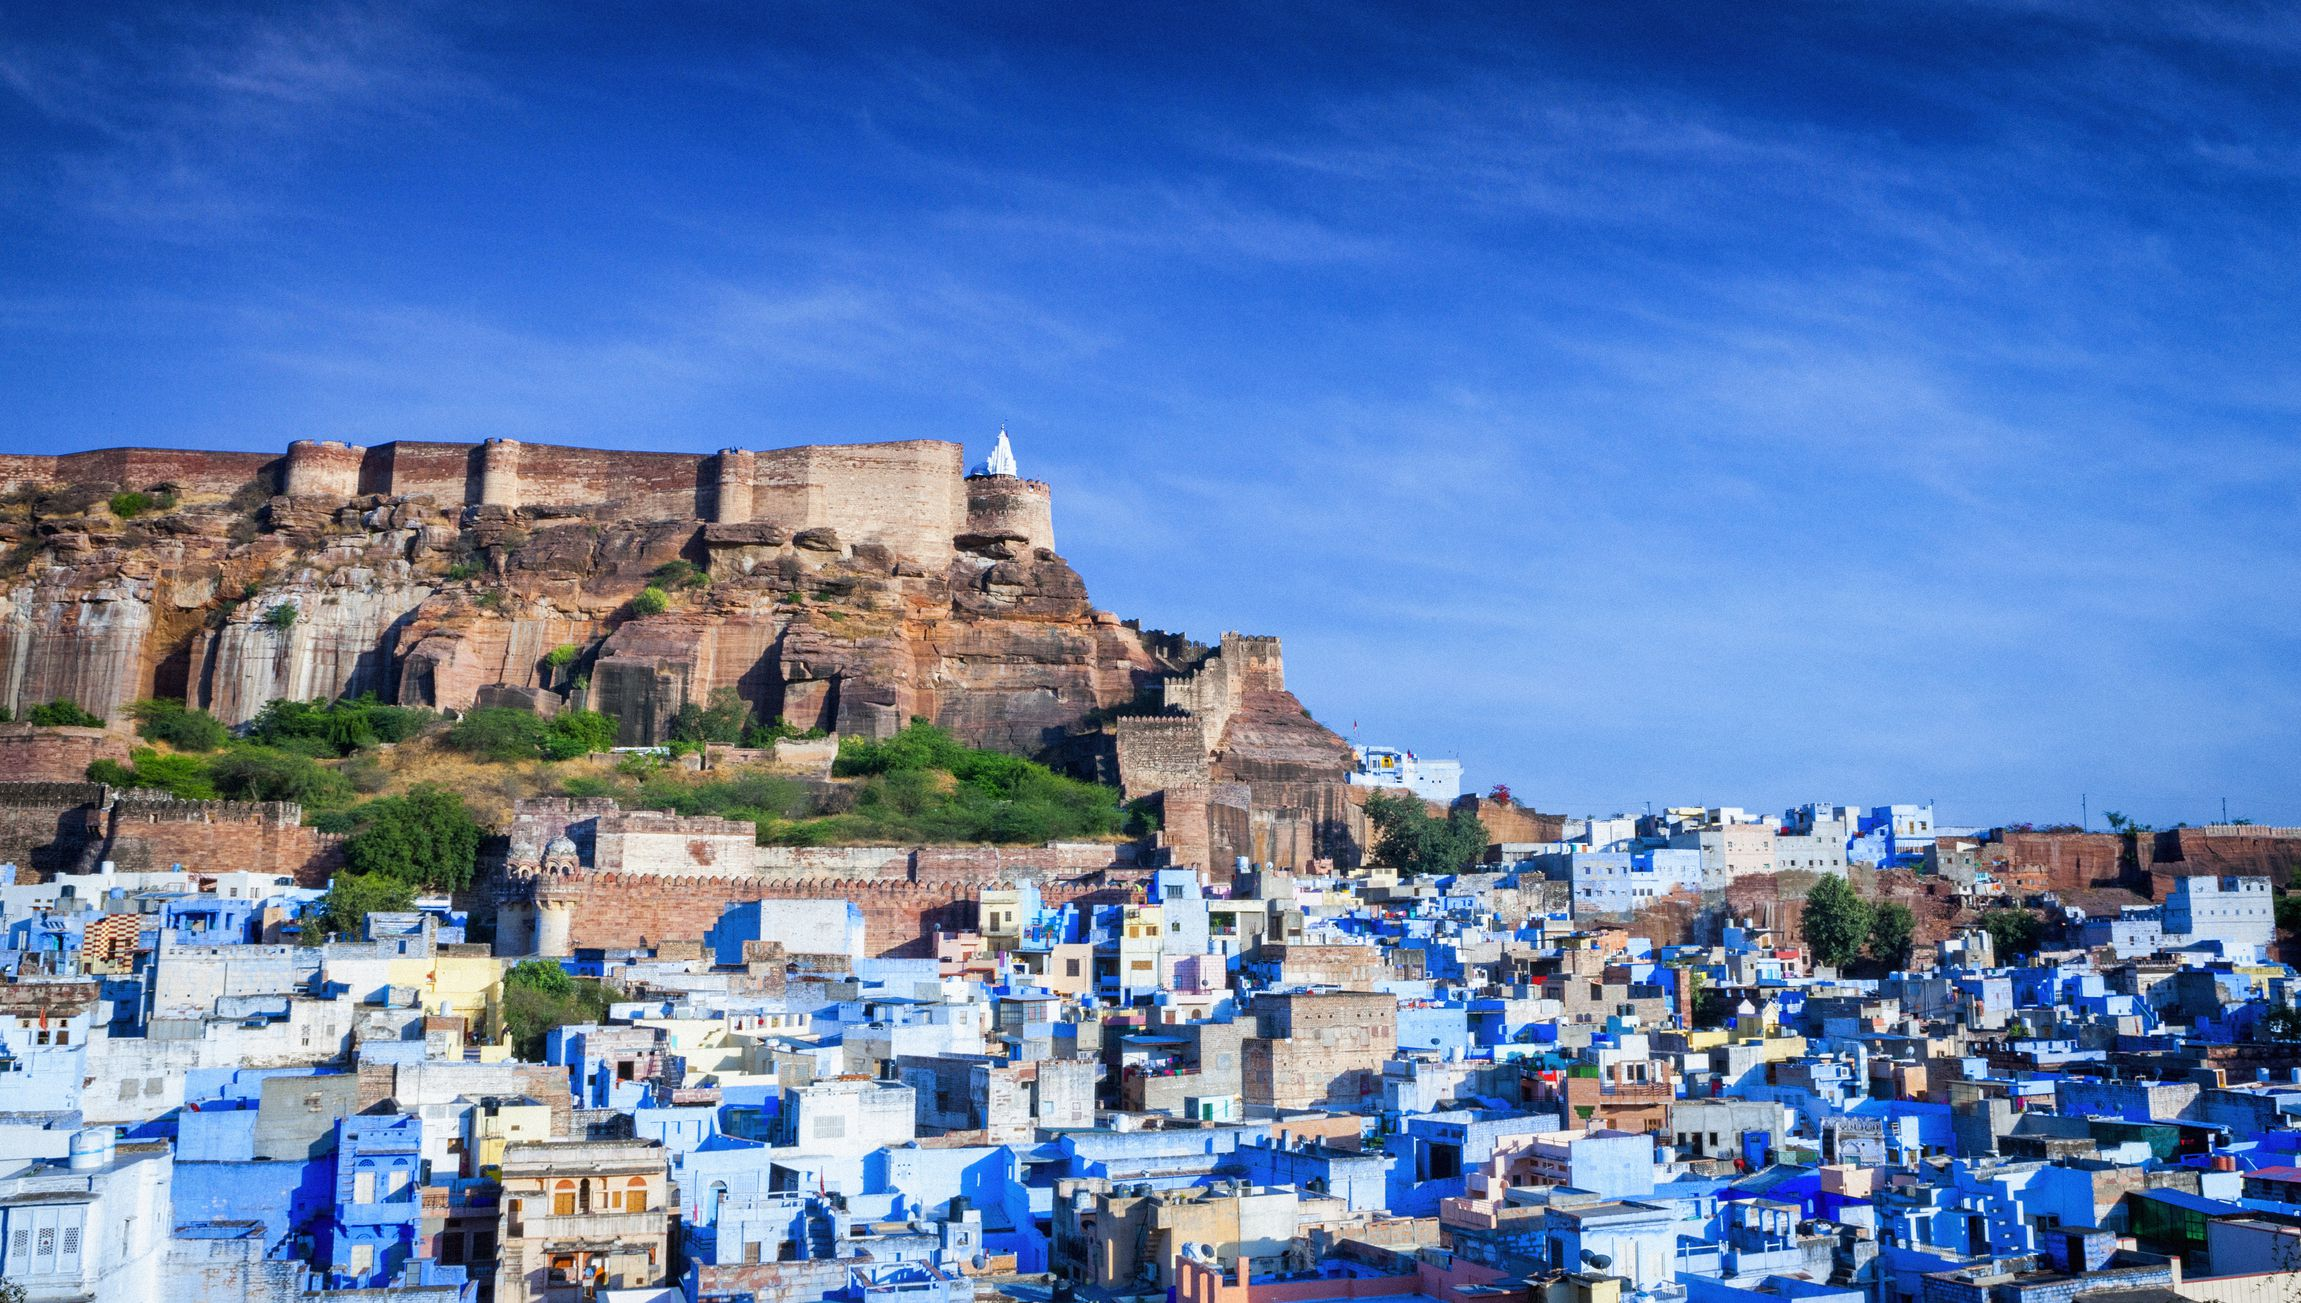 Top 10 Attractions And Places To Visit In Jodhpur